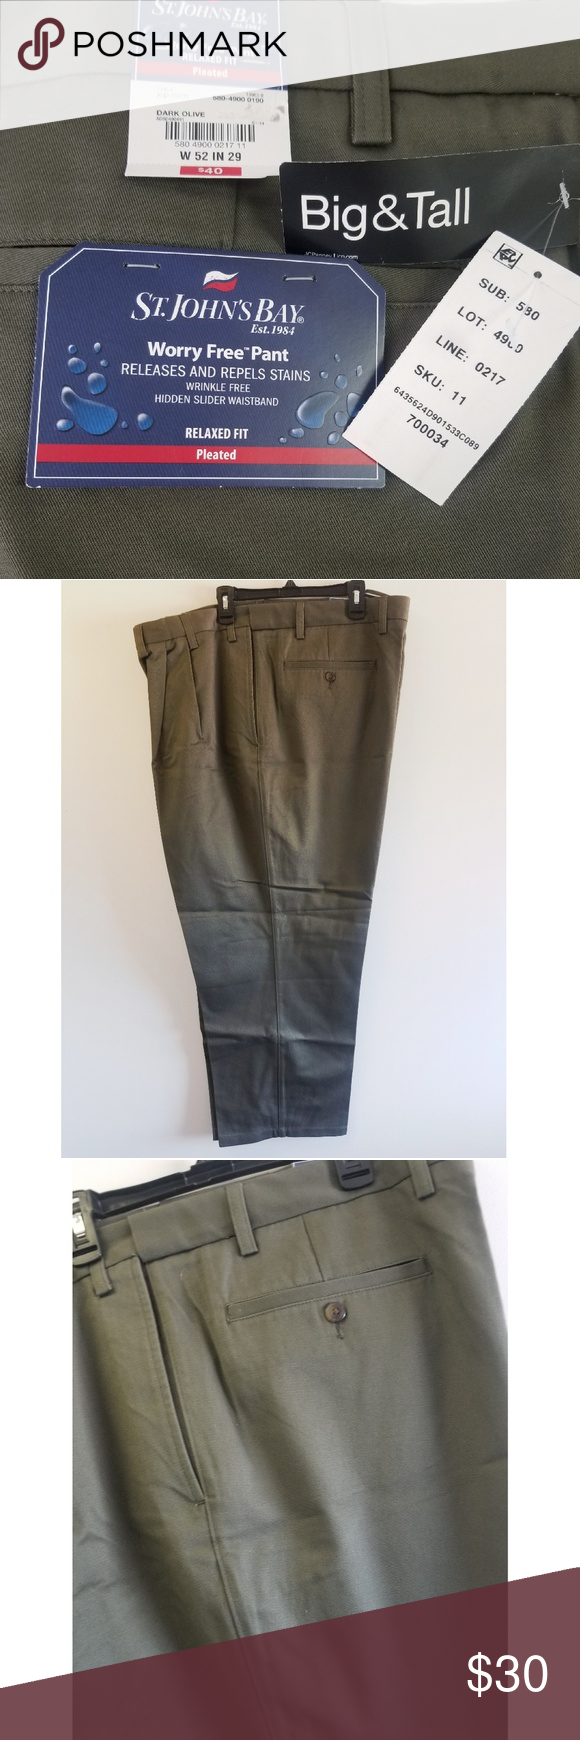 81c24efafd St. John's Bay Big & Tall Pleated Pants Dark olive green pleated slacks. Worry  free pant. Releases and repels stains. Wrinkle free. Hidden slider  waistband.